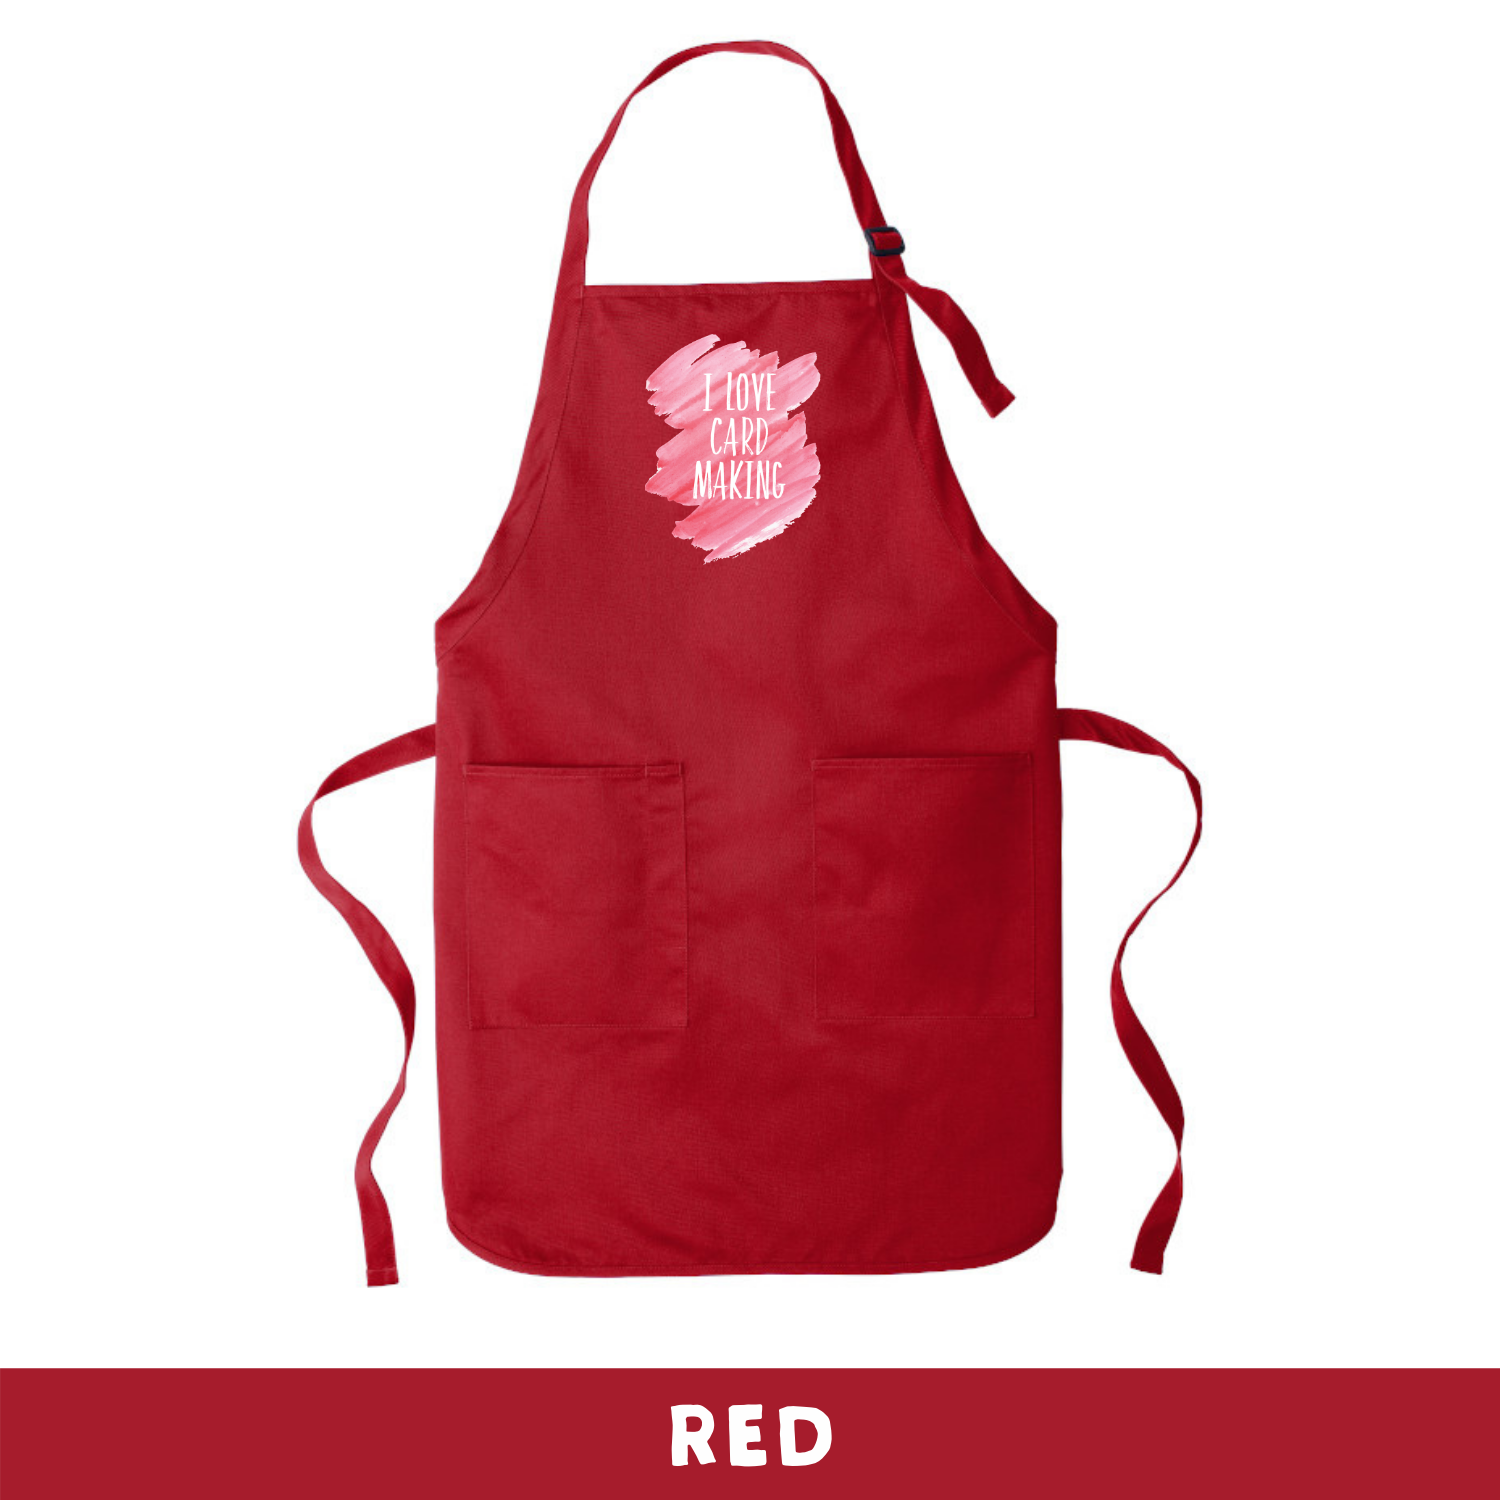 Red - Apron - I Love Cardmaking